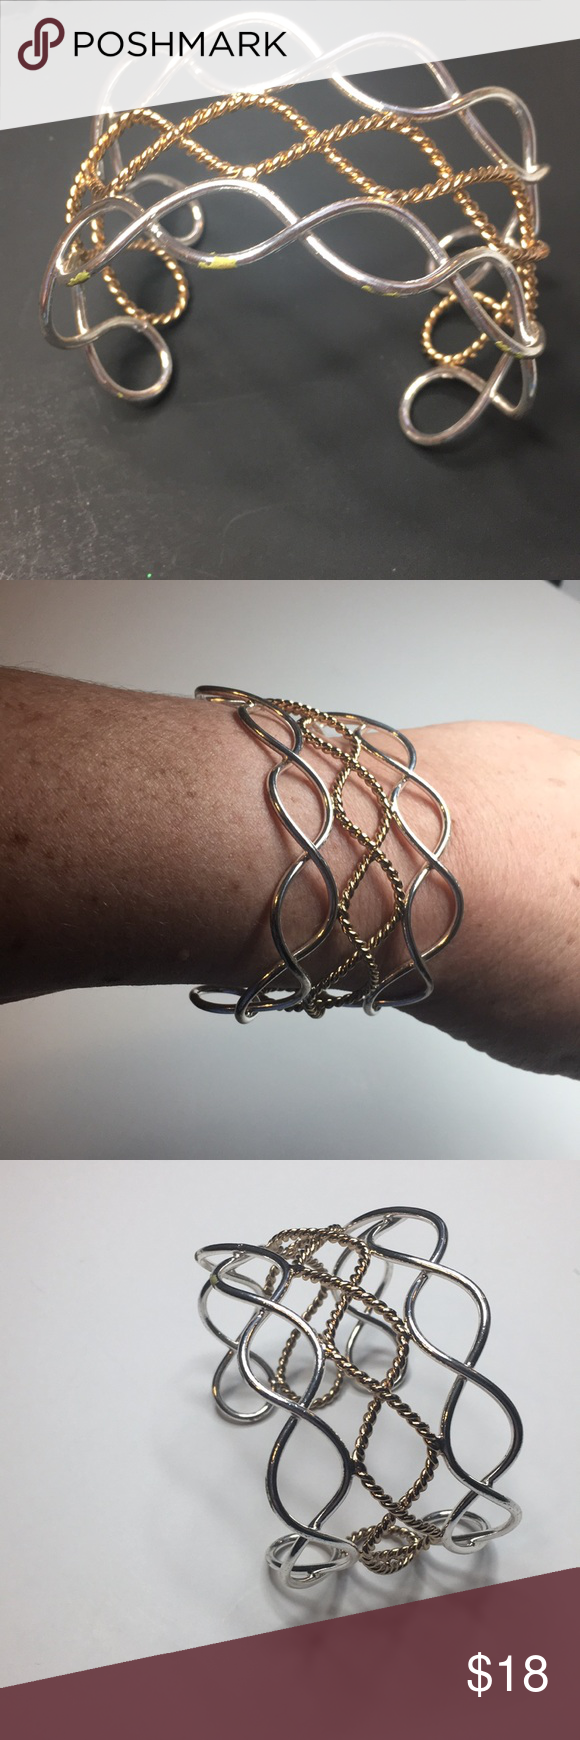 Cuff bracelet silver and gold tone cuff bracelet with oval weave